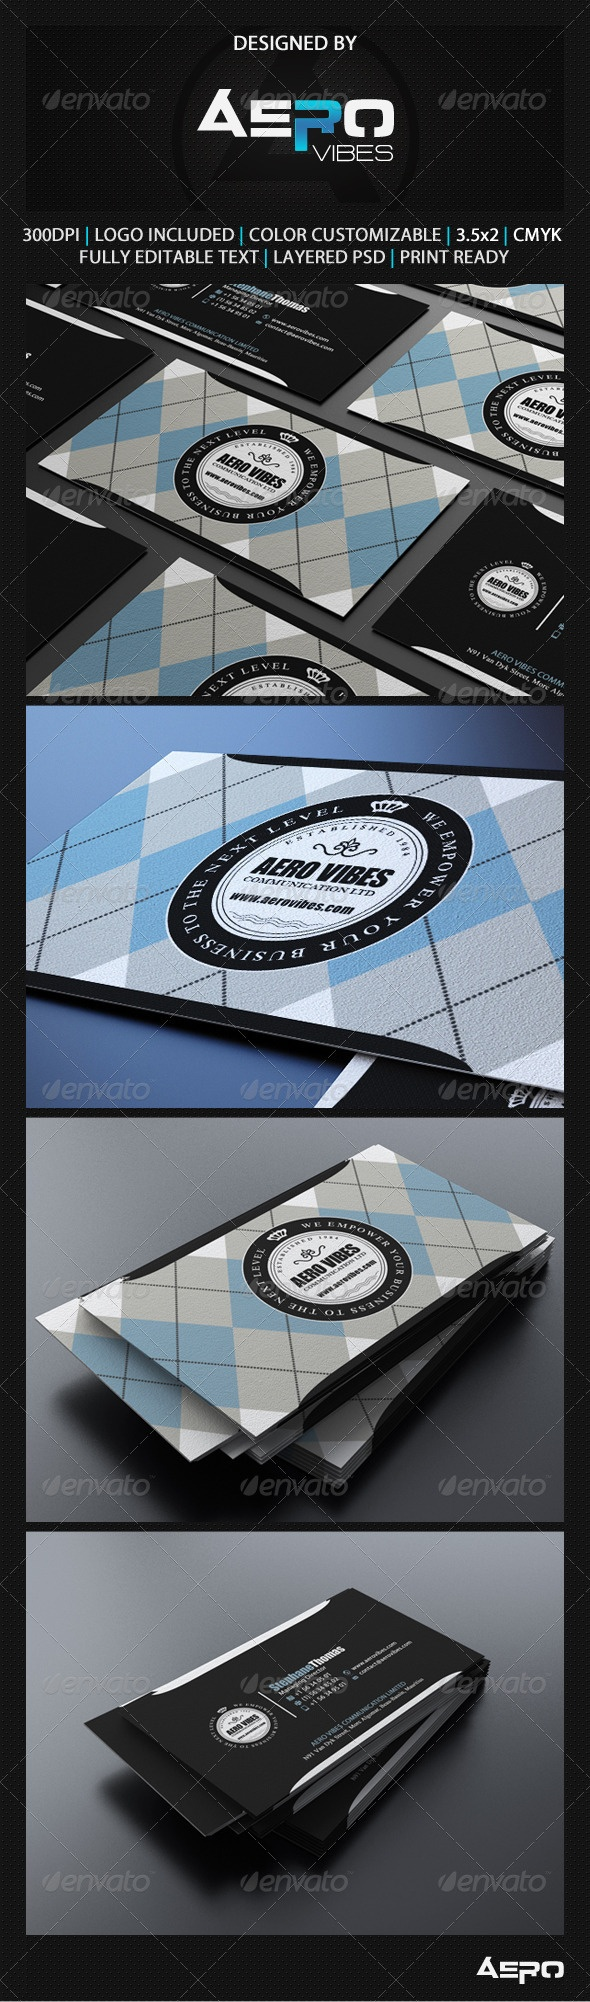 Argyle Business Card